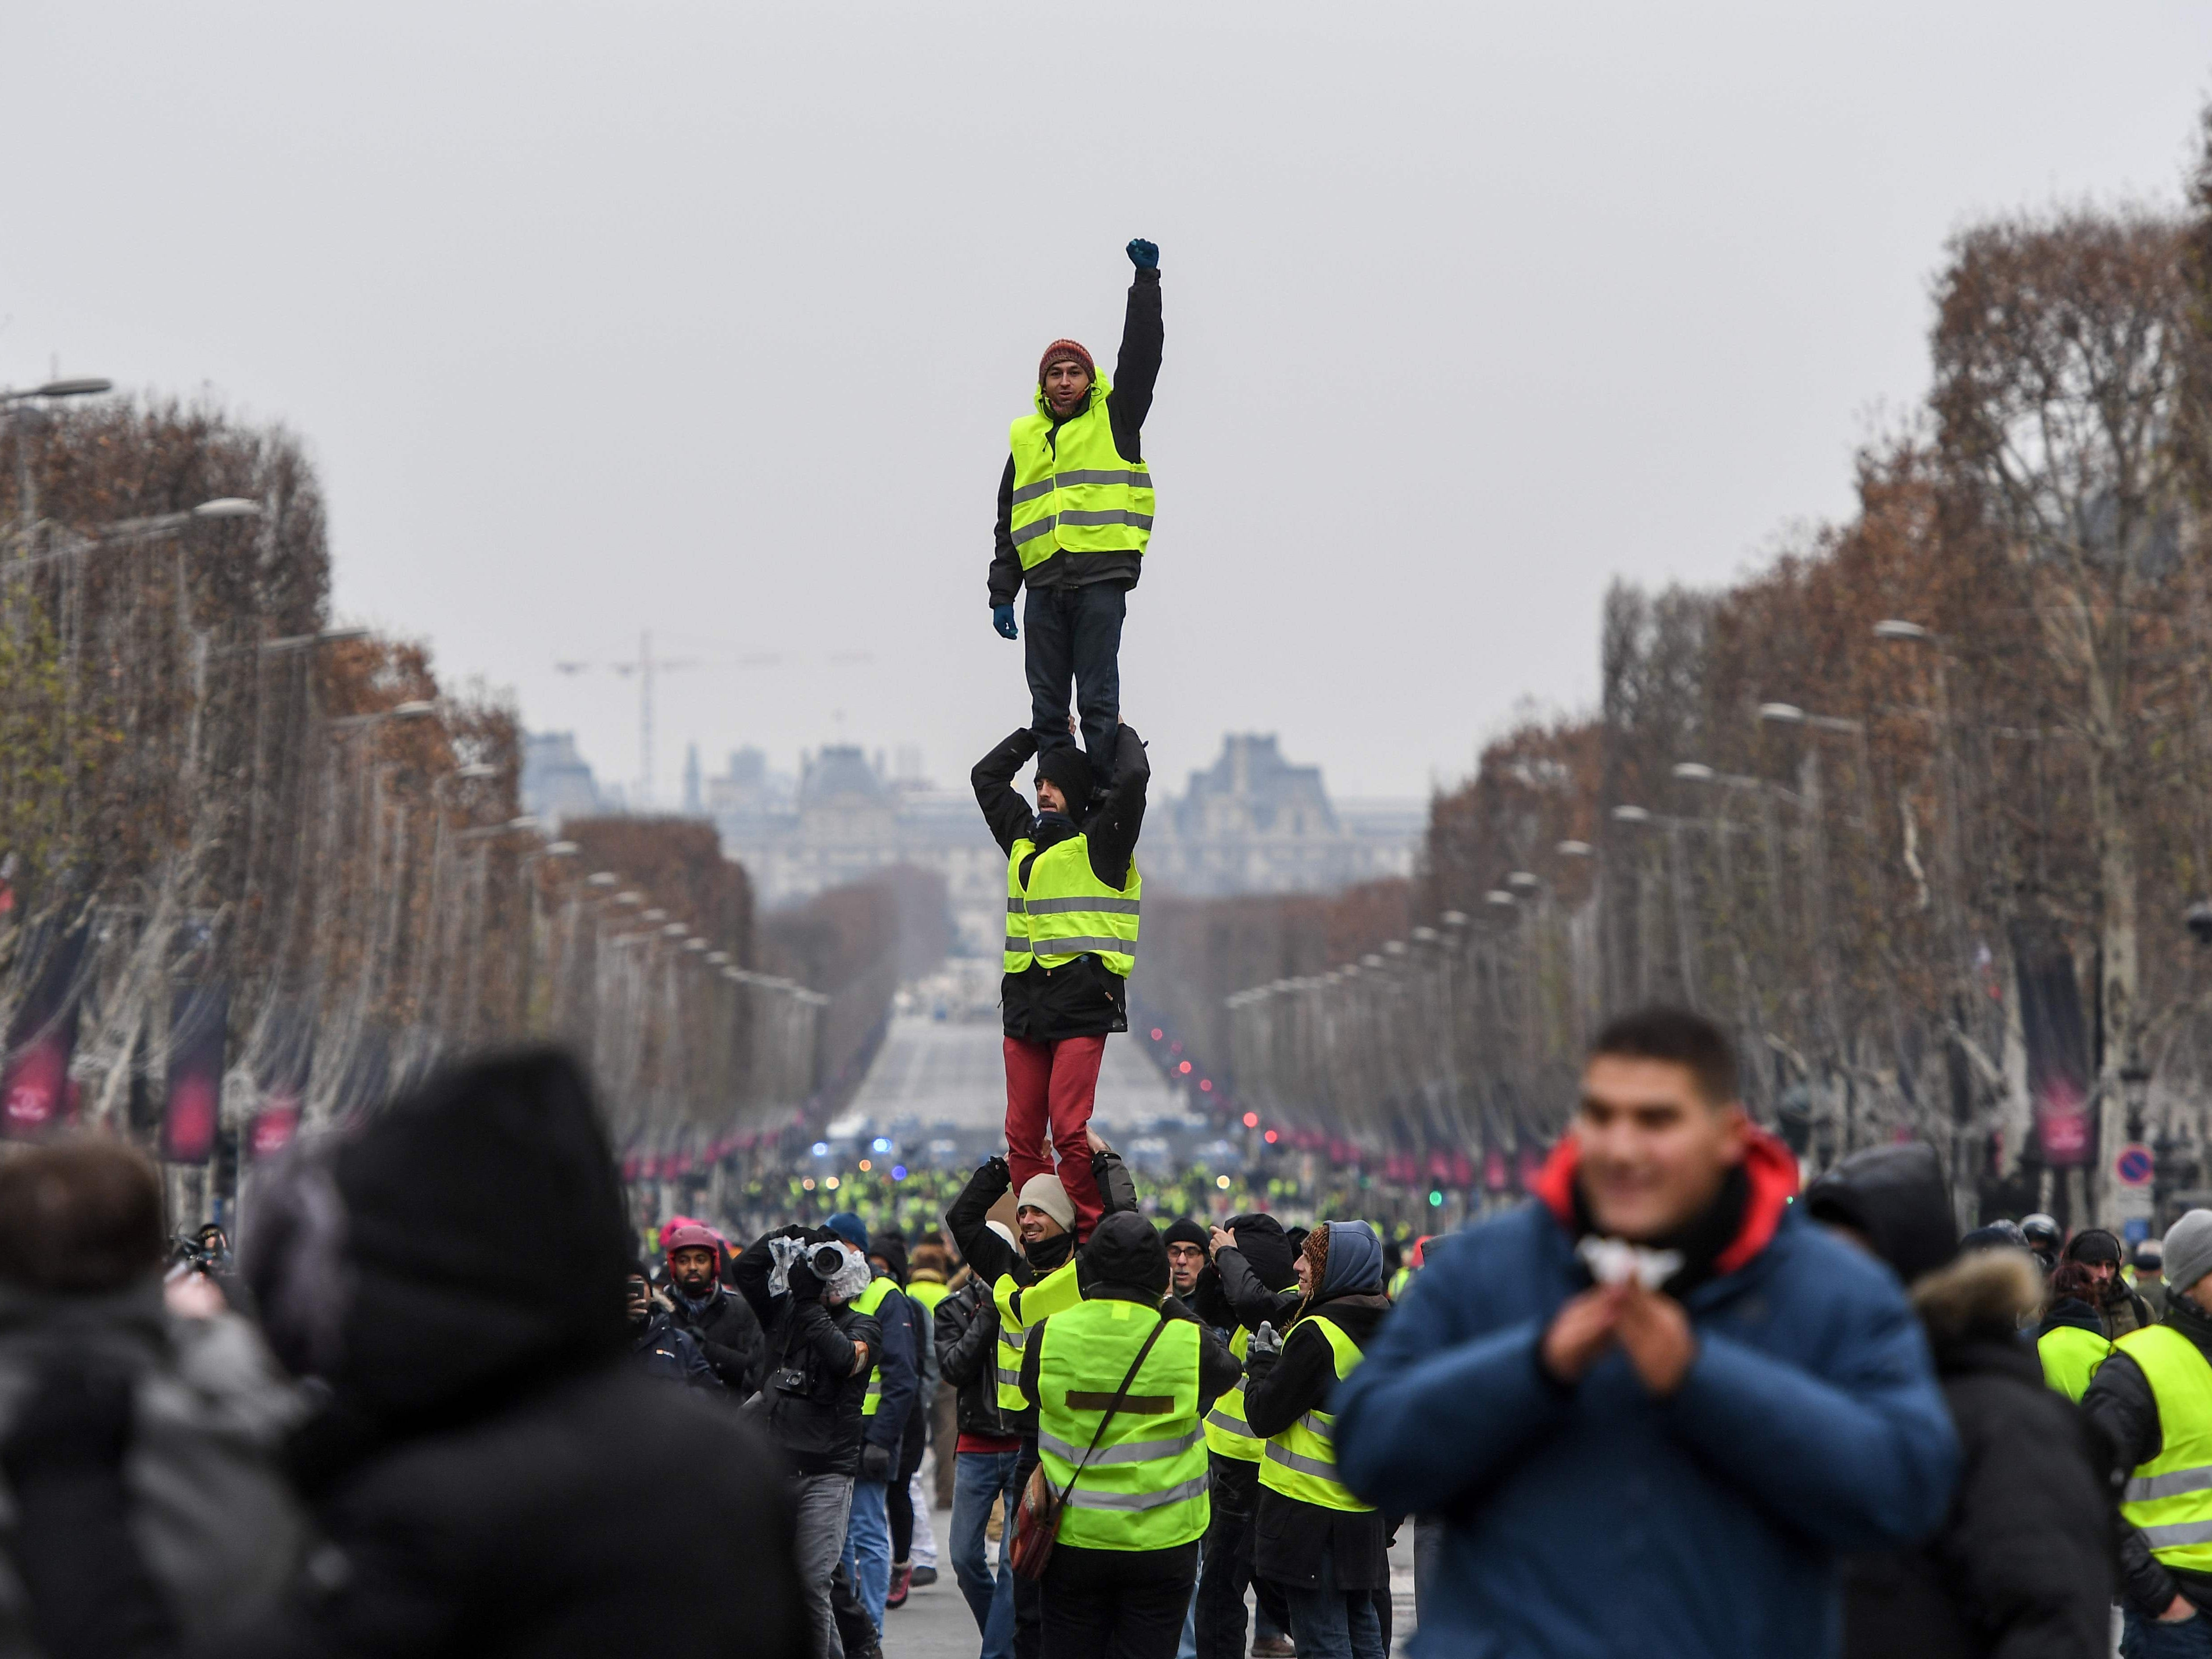 Protesters wearing yellow vests (gilets jaunes) do a human pyramide as they demonstrate against rising costs of living they blame on high taxes in Paris, on Dec. 15, 2018.